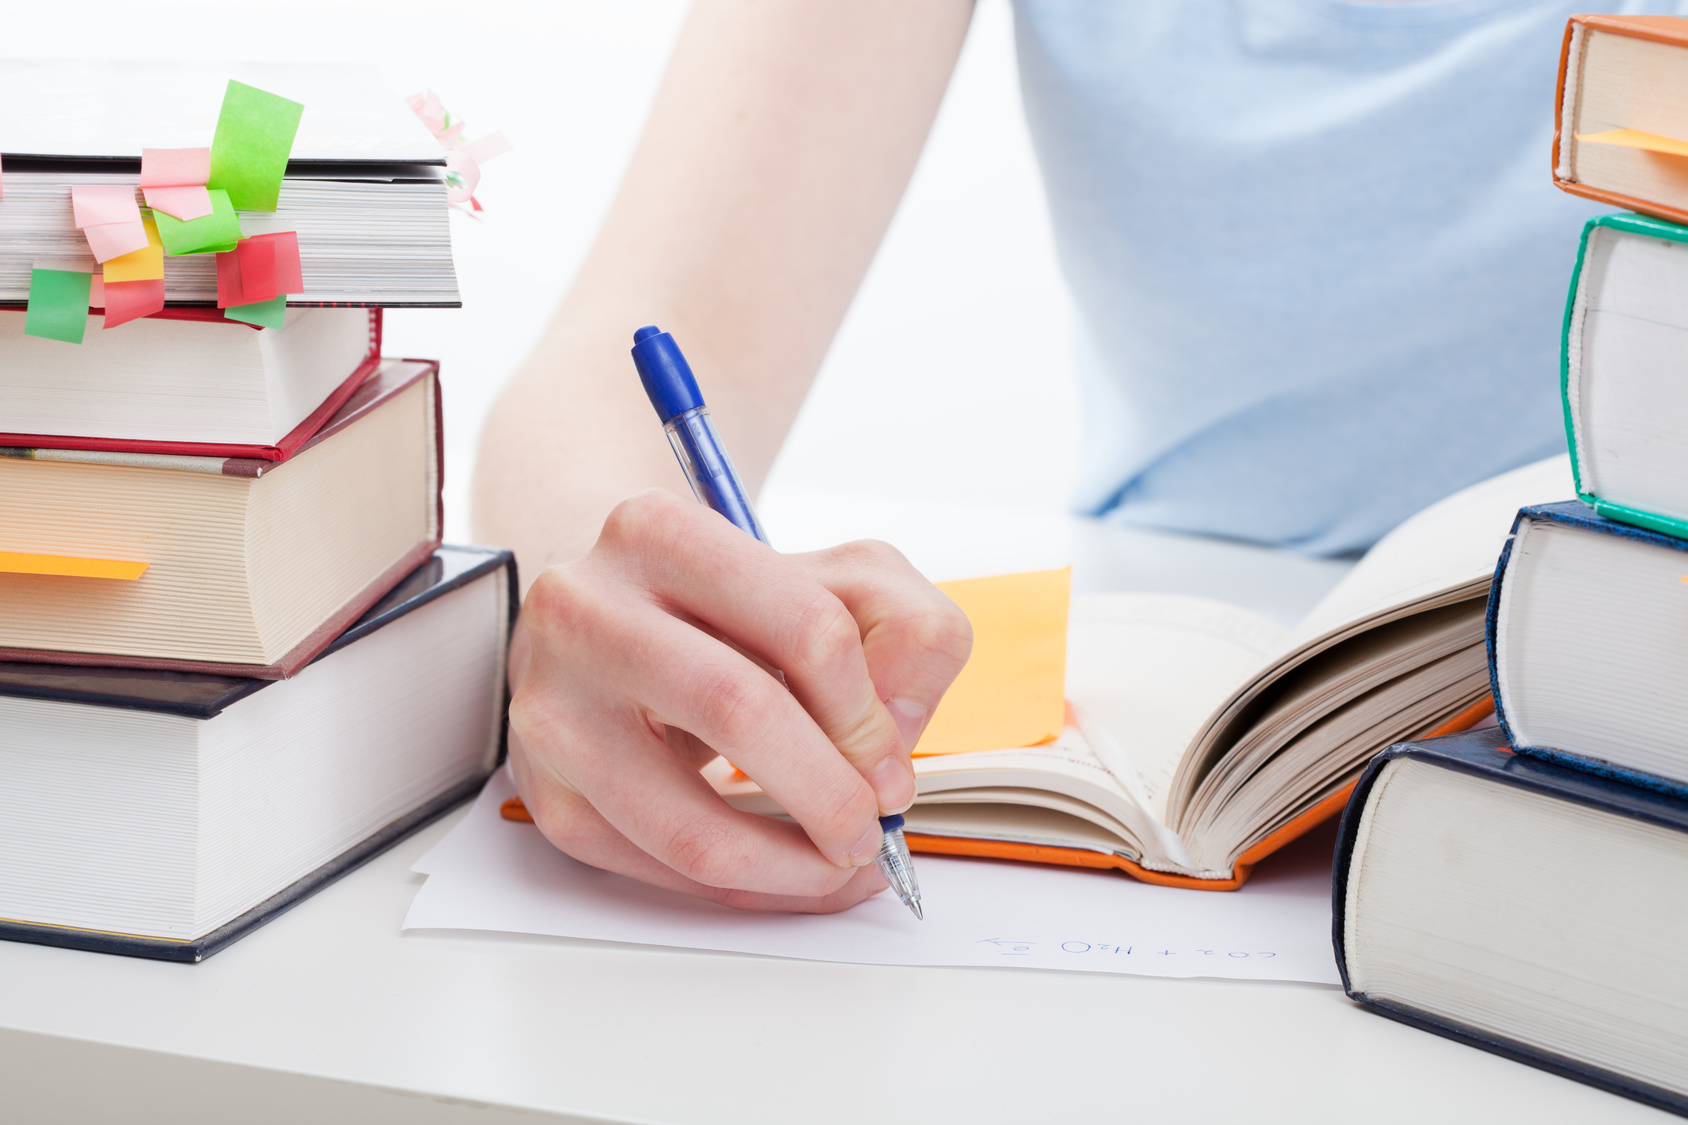 CBSE Sample paper 2020 for class 10th and 12th